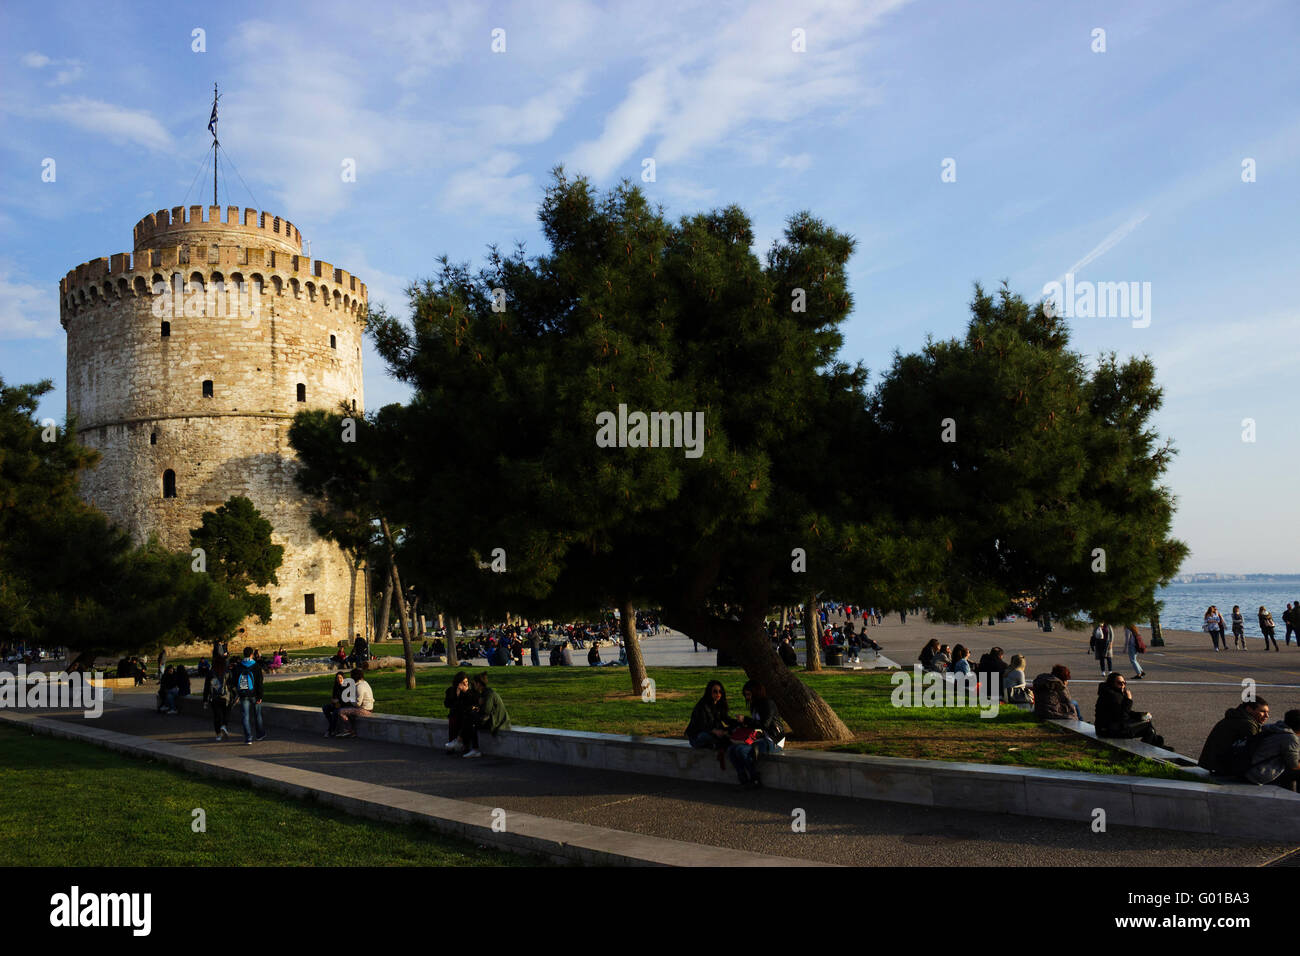 The White Tower landmark of Thessaloniki or Thessalonica and people having a break at the New promenade's park. - Stock Image